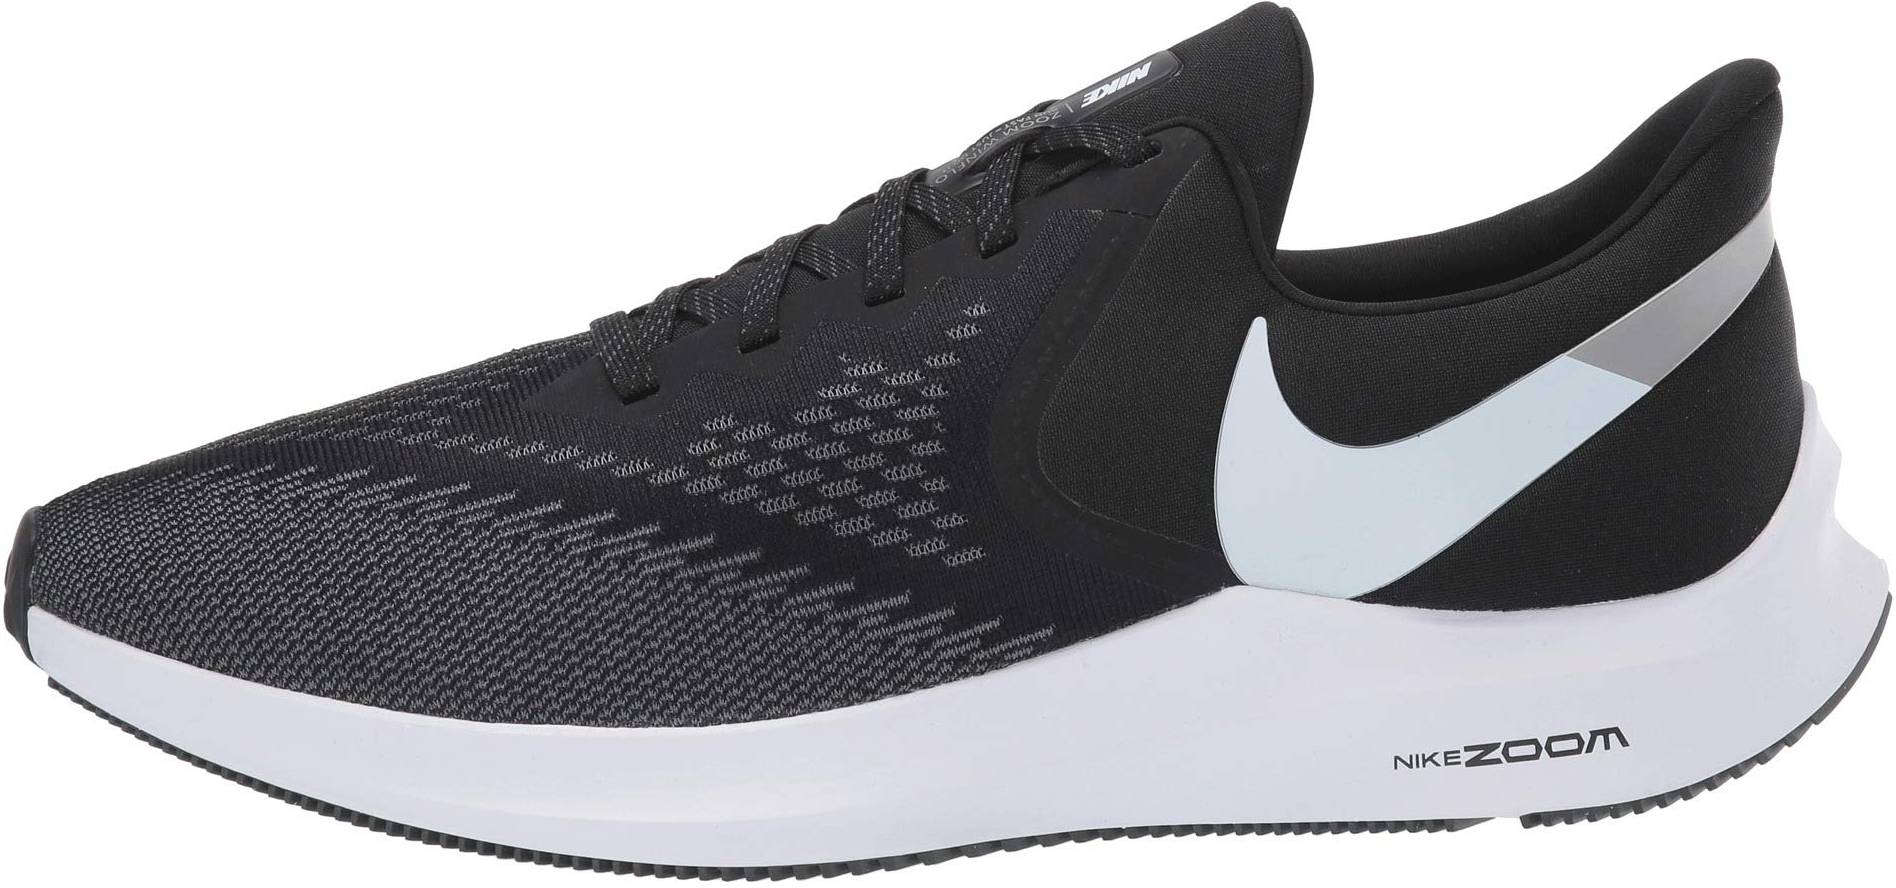 Nike Air Zoom Winflo 6 - Deals, Facts, Reviews (2021) | RunRepeat